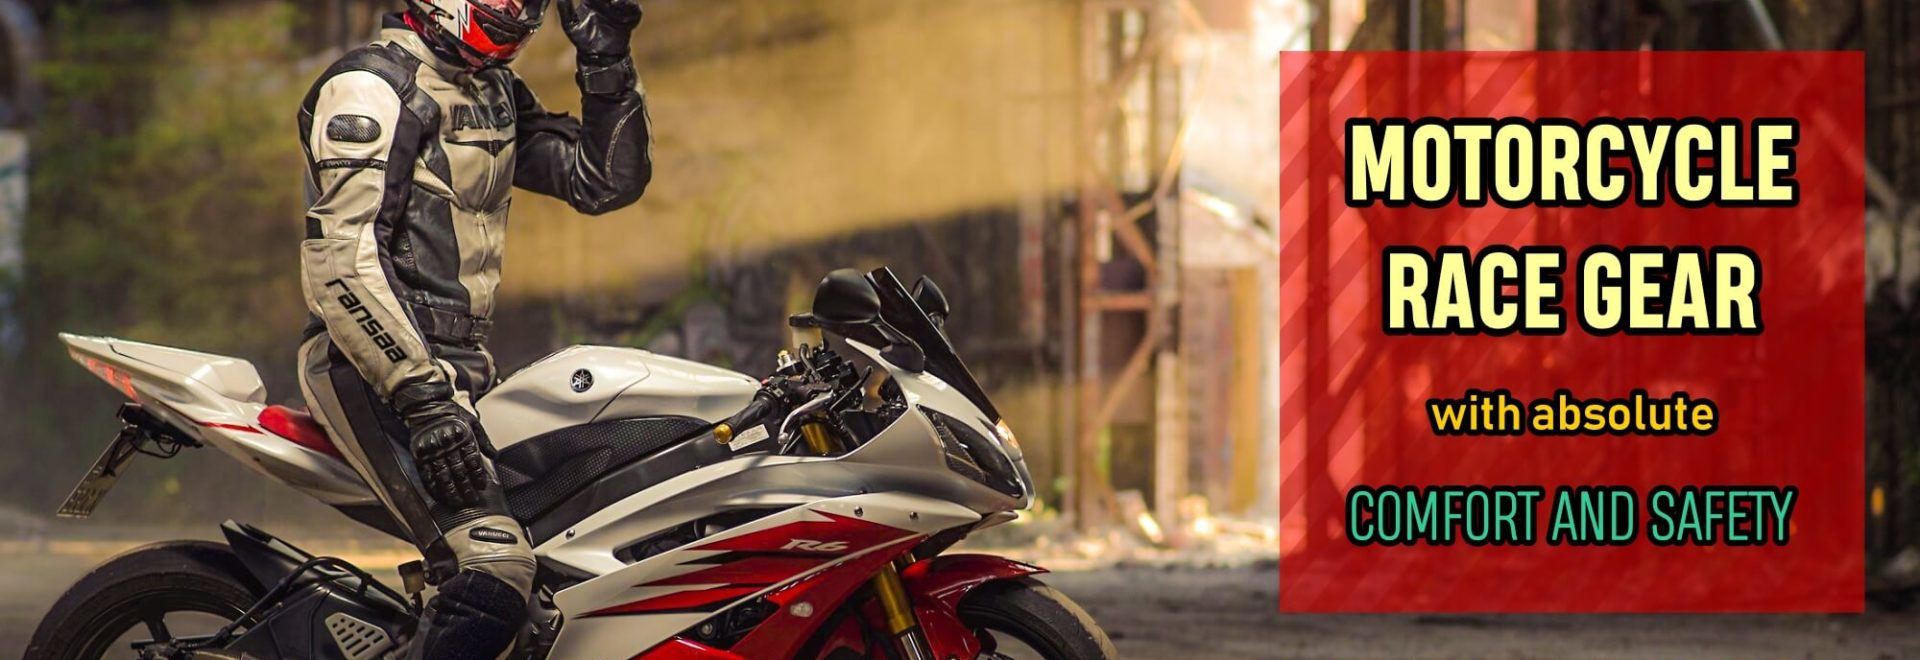 motorcycle gear banner